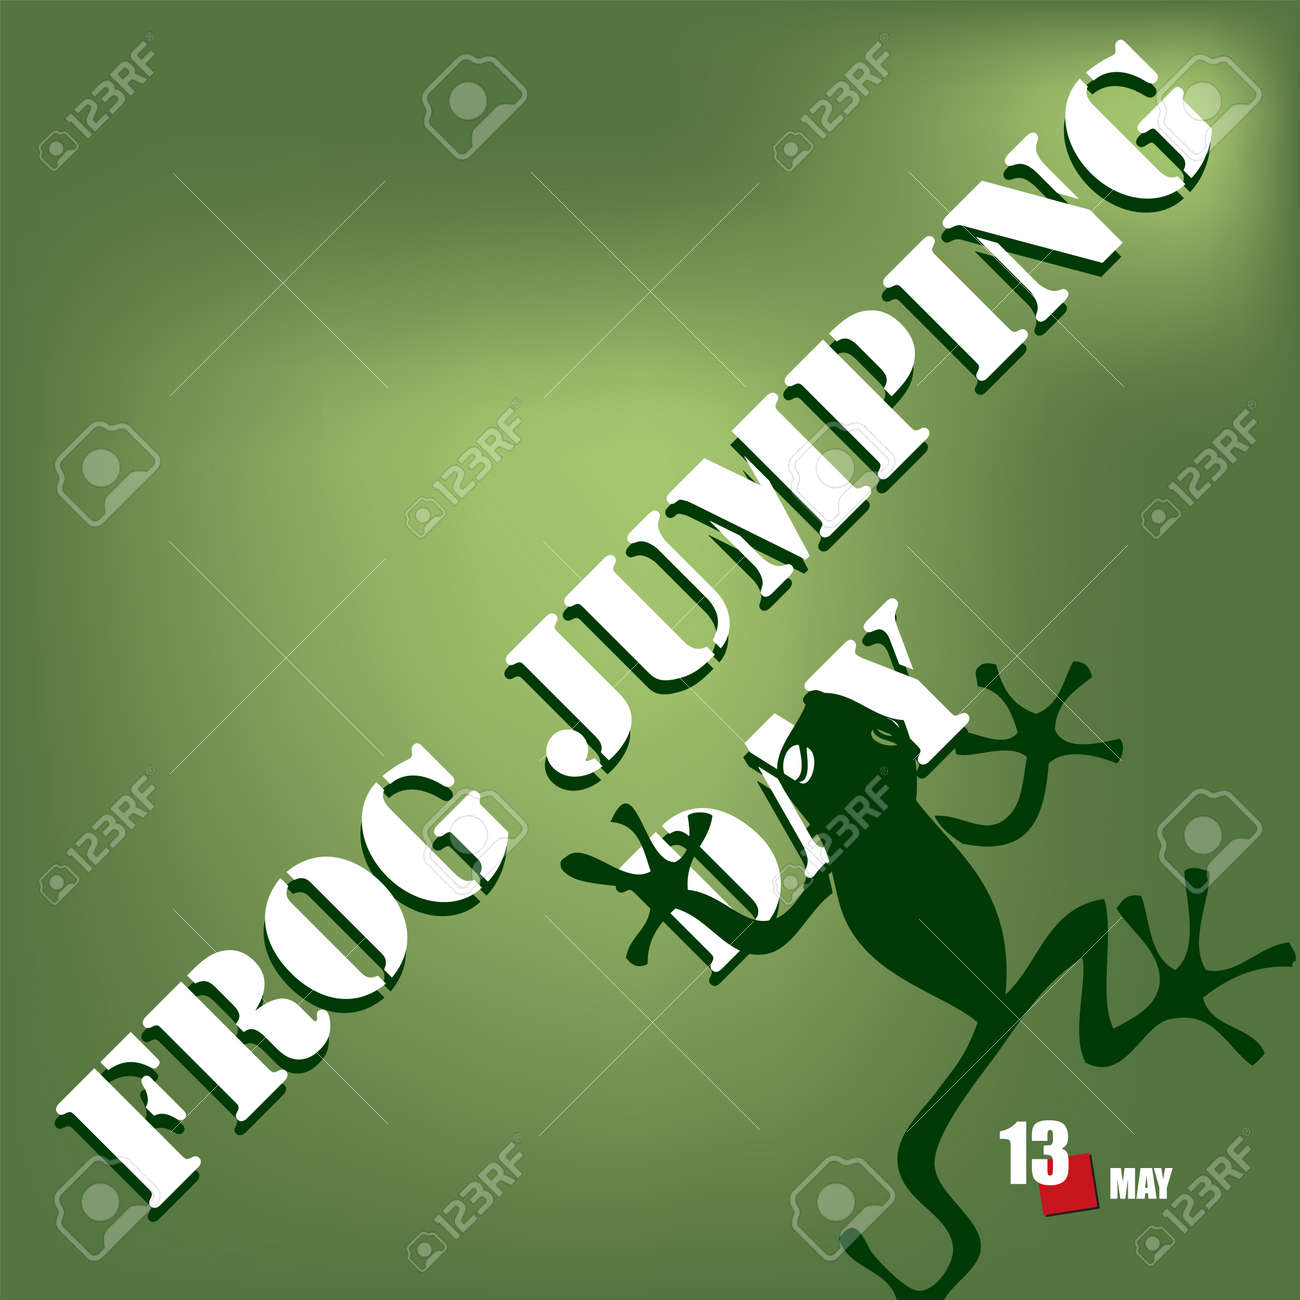 The calendar event is celebrated in may - Frog Jumping Day - 169027970